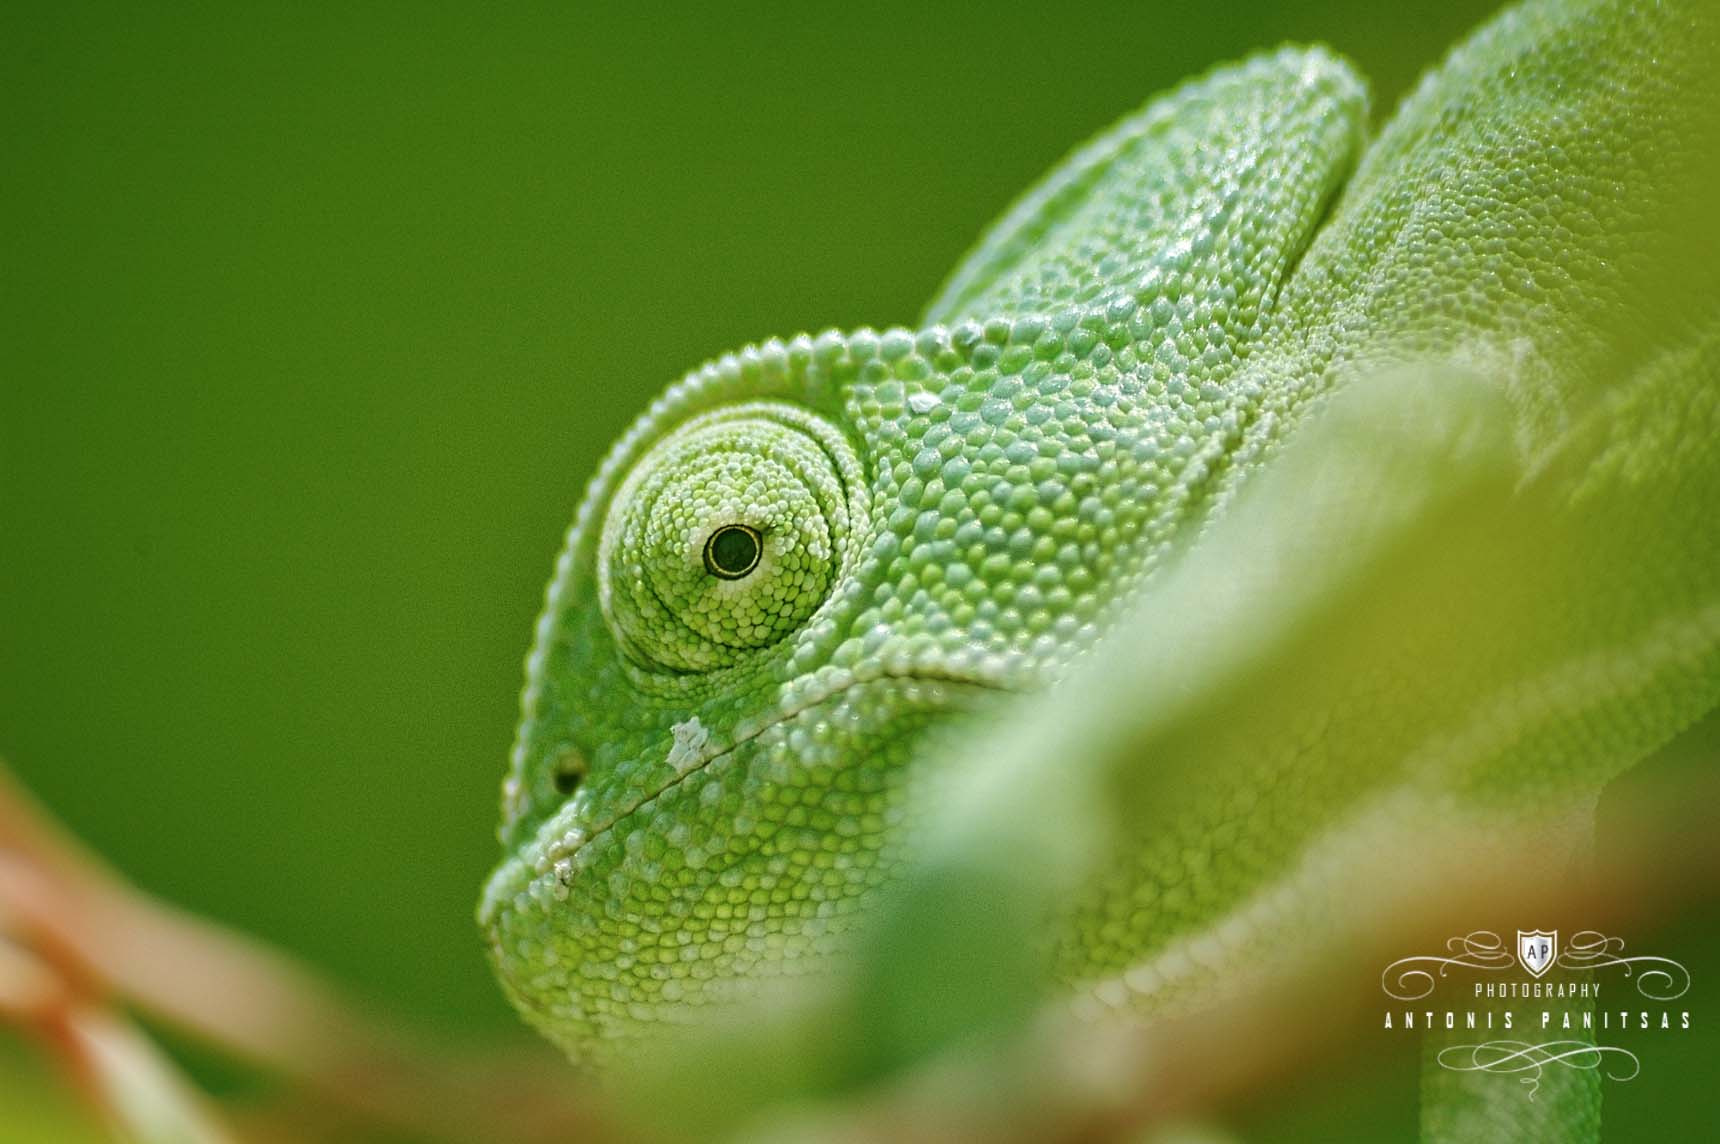 Photograph African Chameleon (Chamaeleo africanus) by Antonis Panitsas on 500px